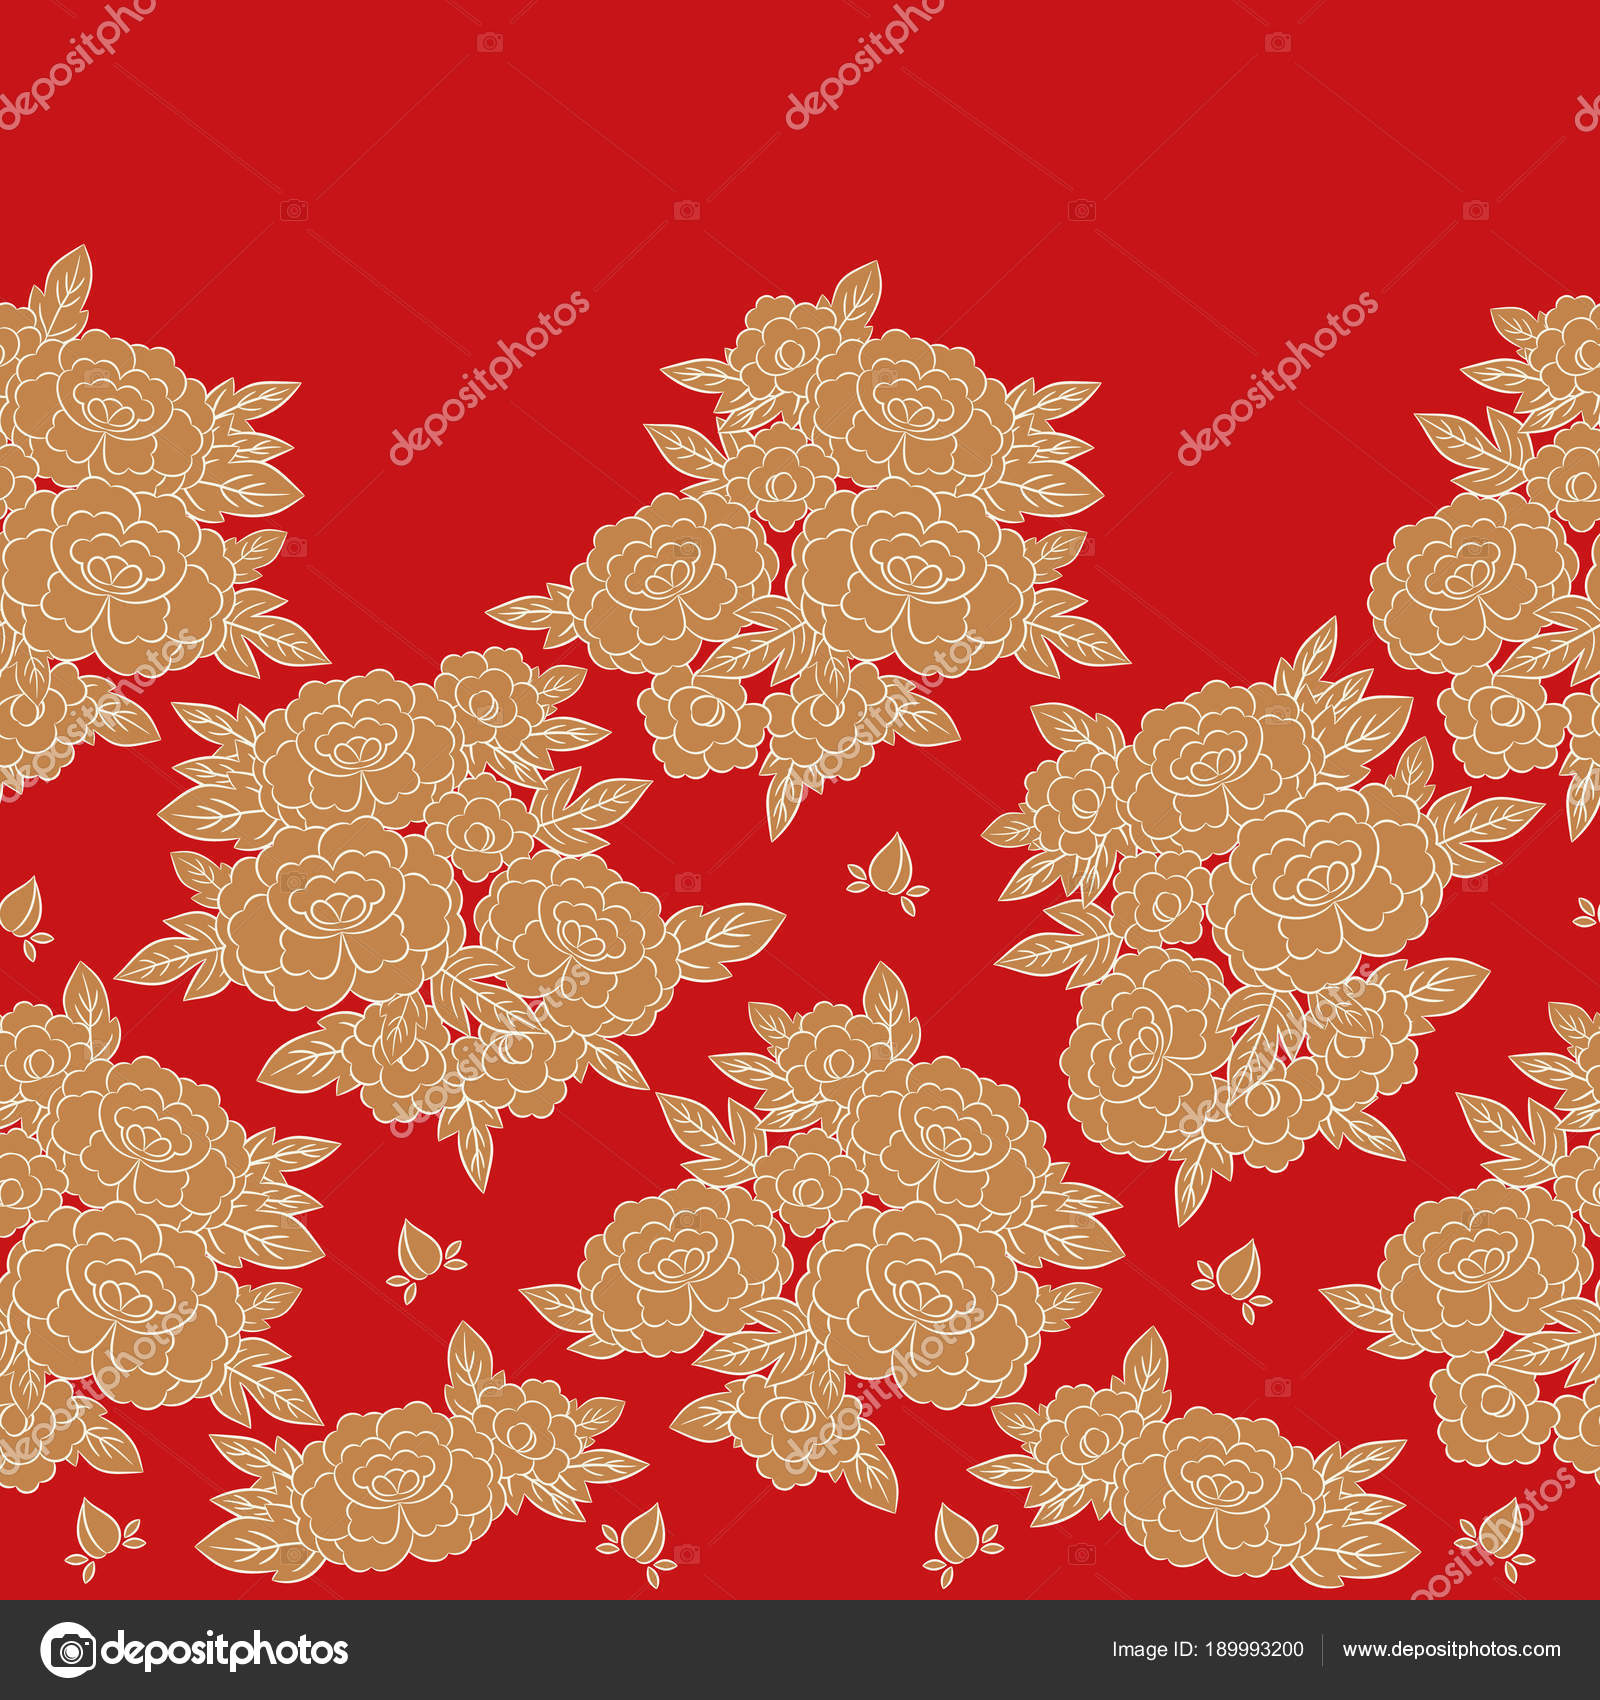 Have asian peony print seems excellent